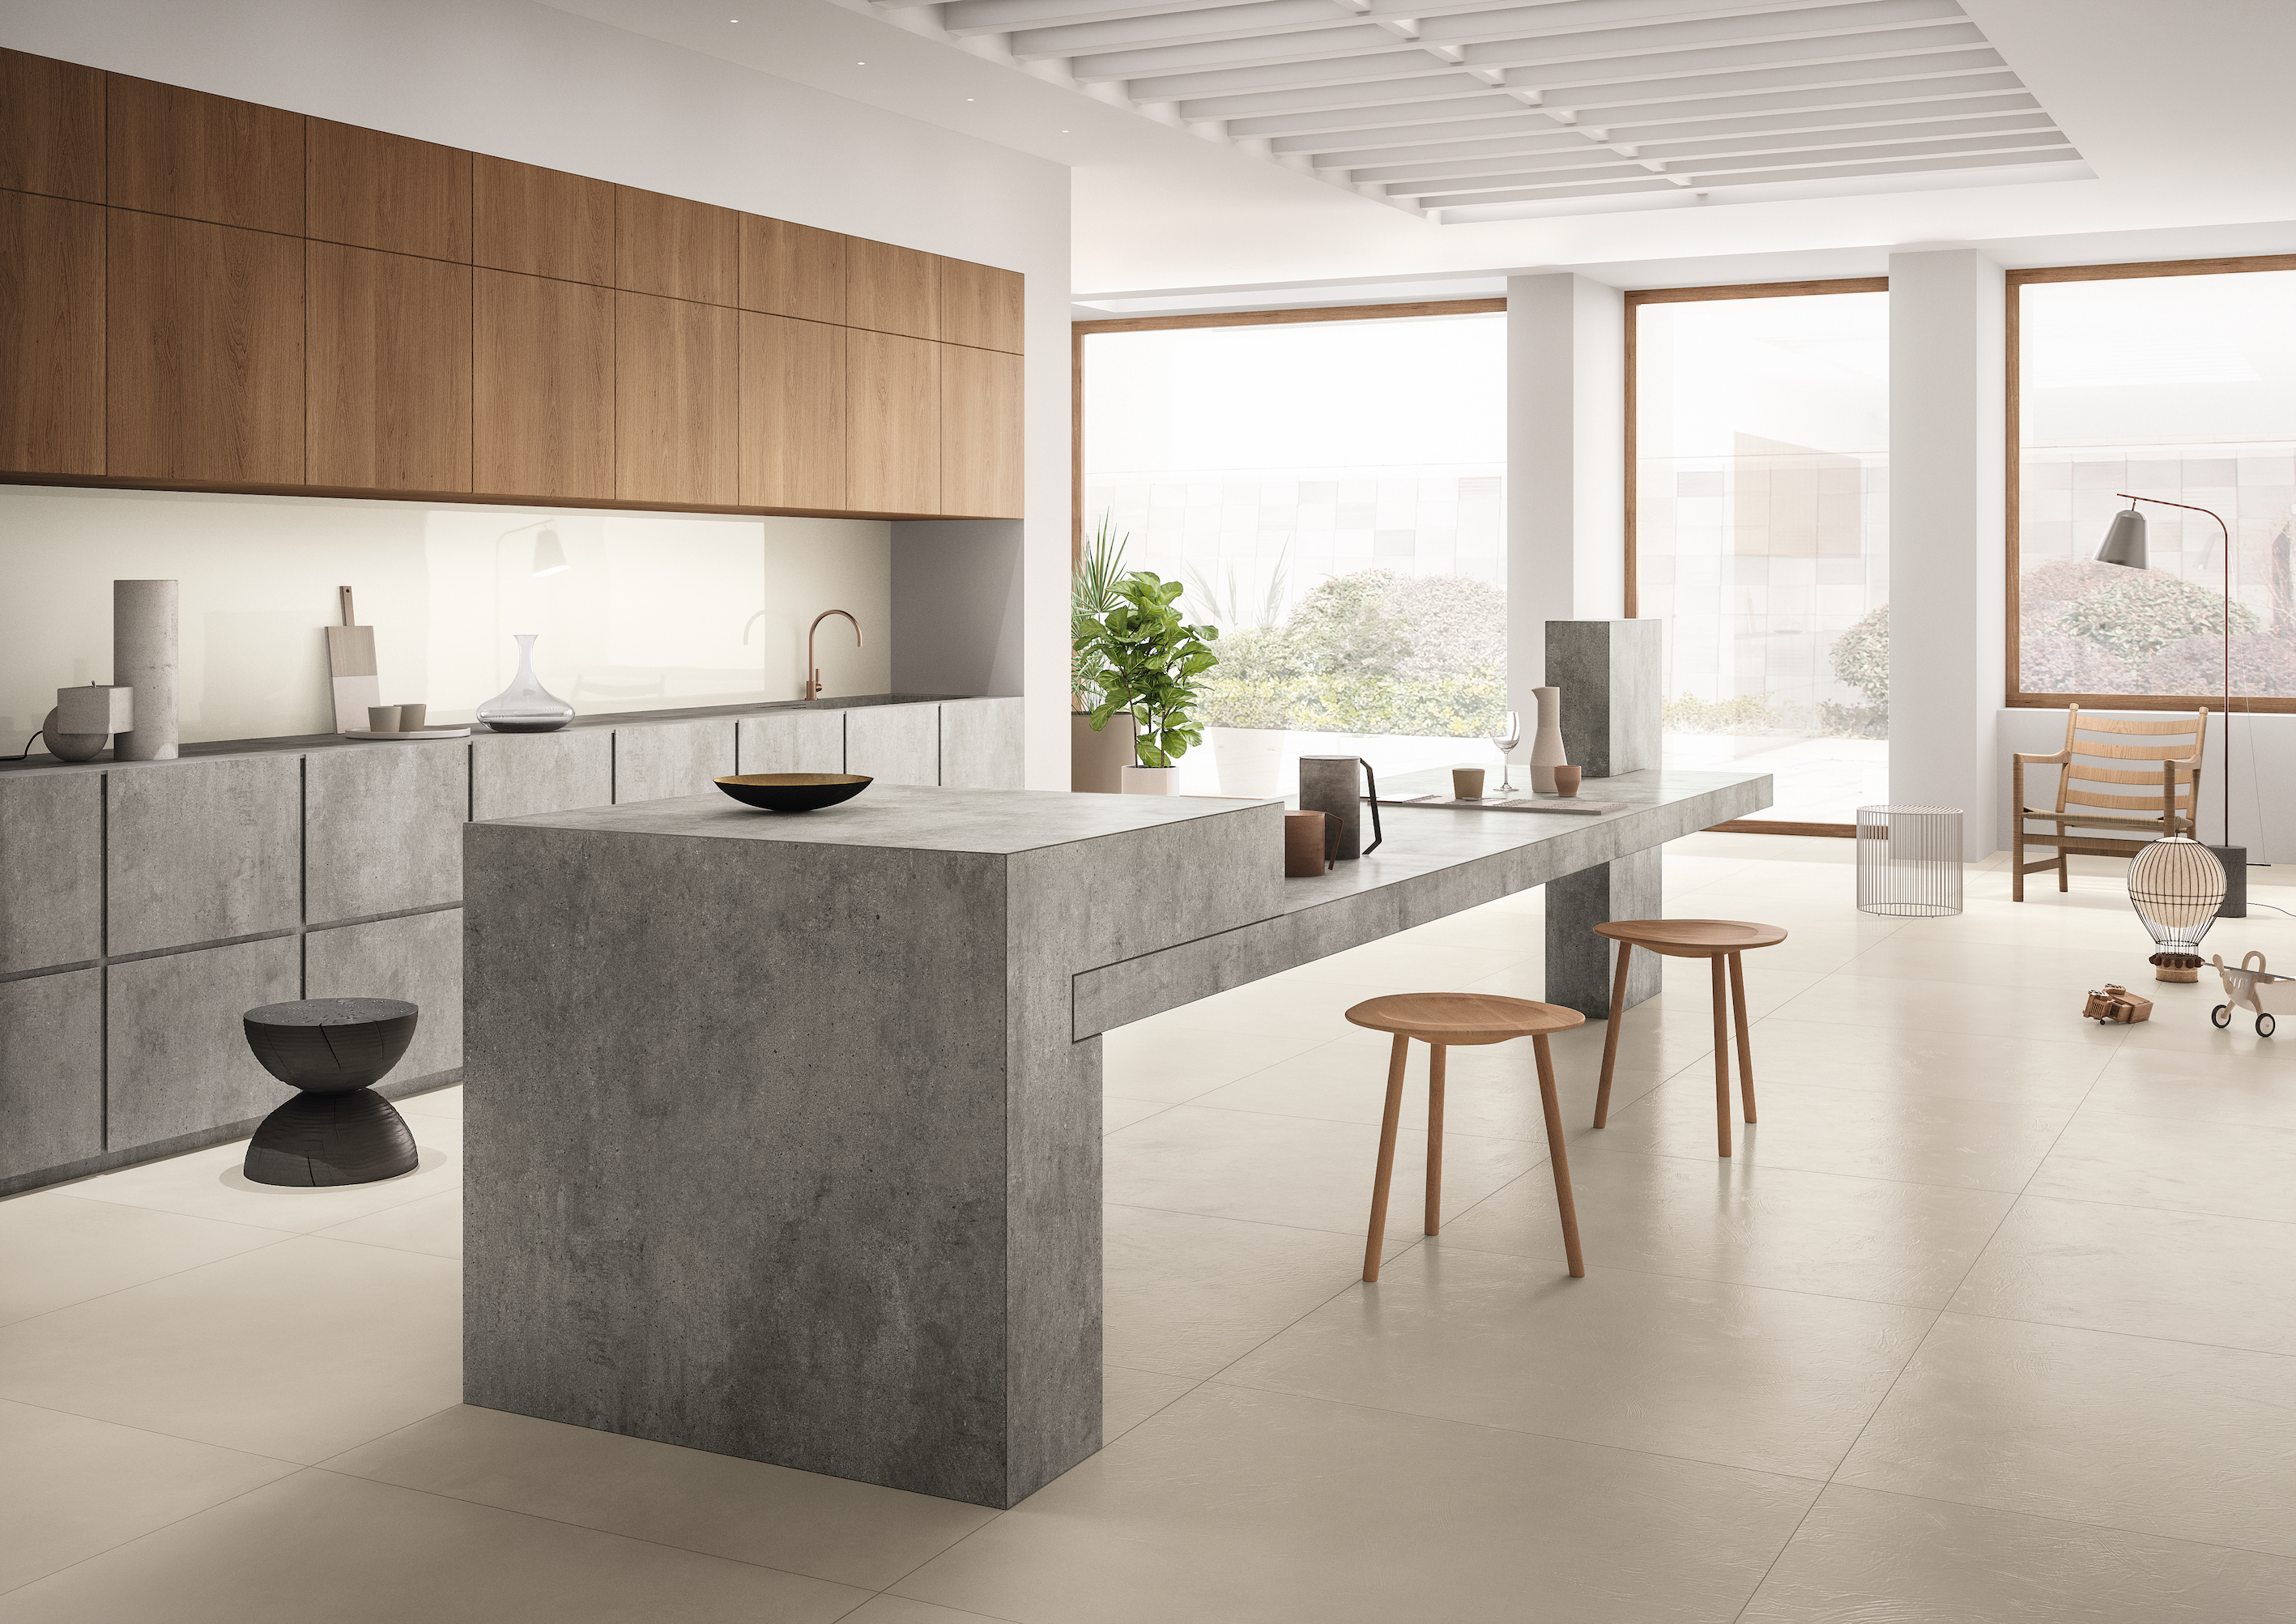 Introducing SapienStone: Innovative Ceramic Surfaces